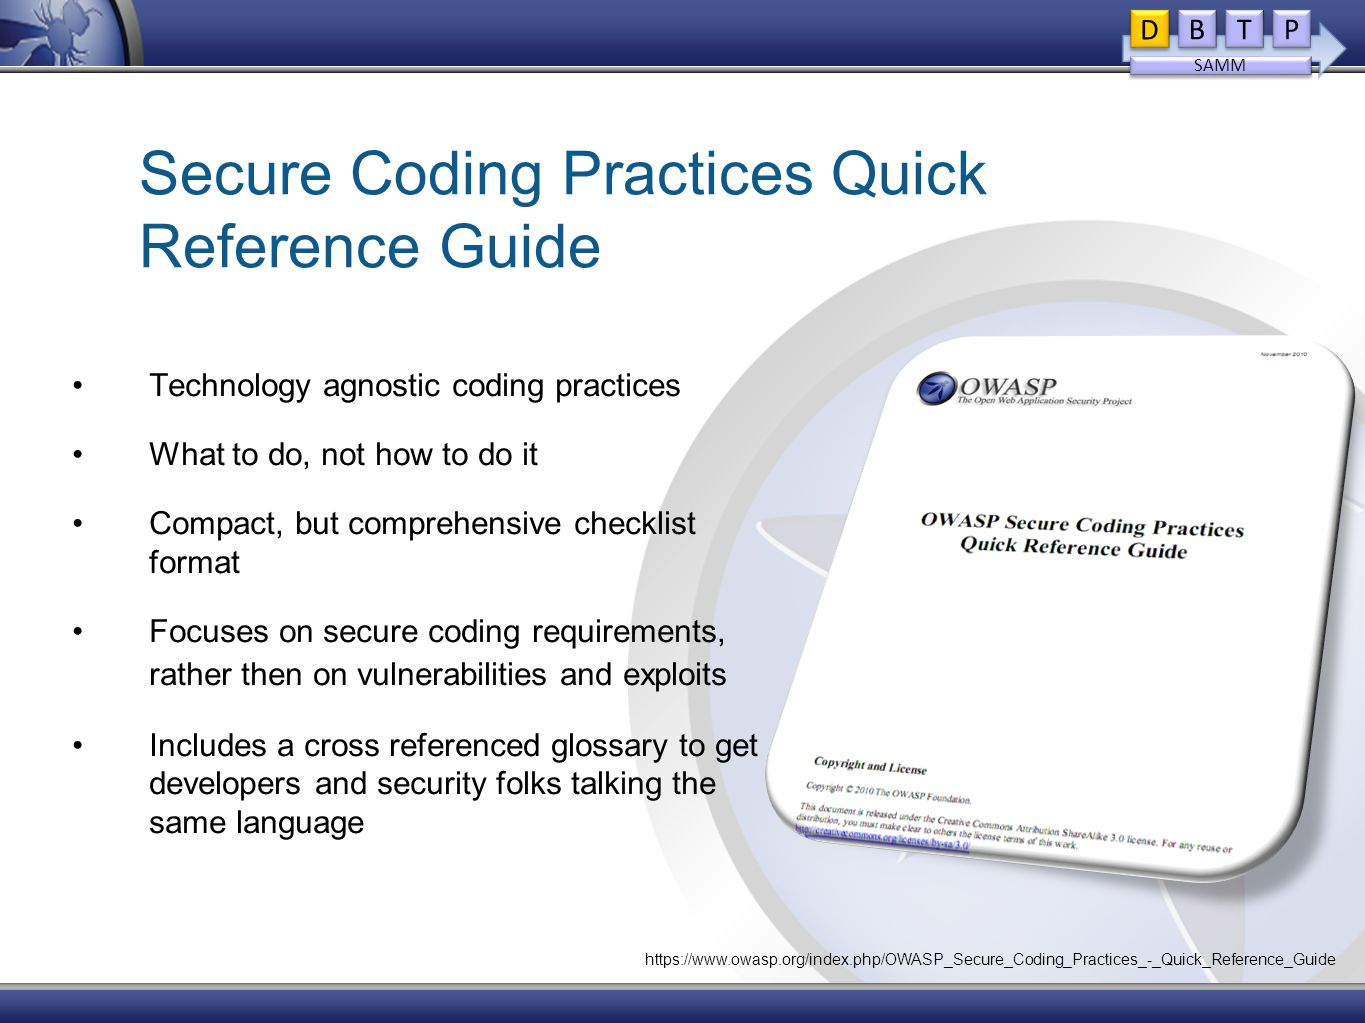 Secure Coding Practices Quick Reference Guide Technology agnostic coding practices What to do, not how to do it Compact, but comprehensive checklist format Focuses on secure coding requirements, rather then on vulnerabilities and exploits Includes a cross referenced glossary to get developers and security folks talking the same language D D B B T T P P SAMM https://www.owasp.org/index.php/OWASP_Secure_Coding_Practices_-_Quick_Reference_Guide